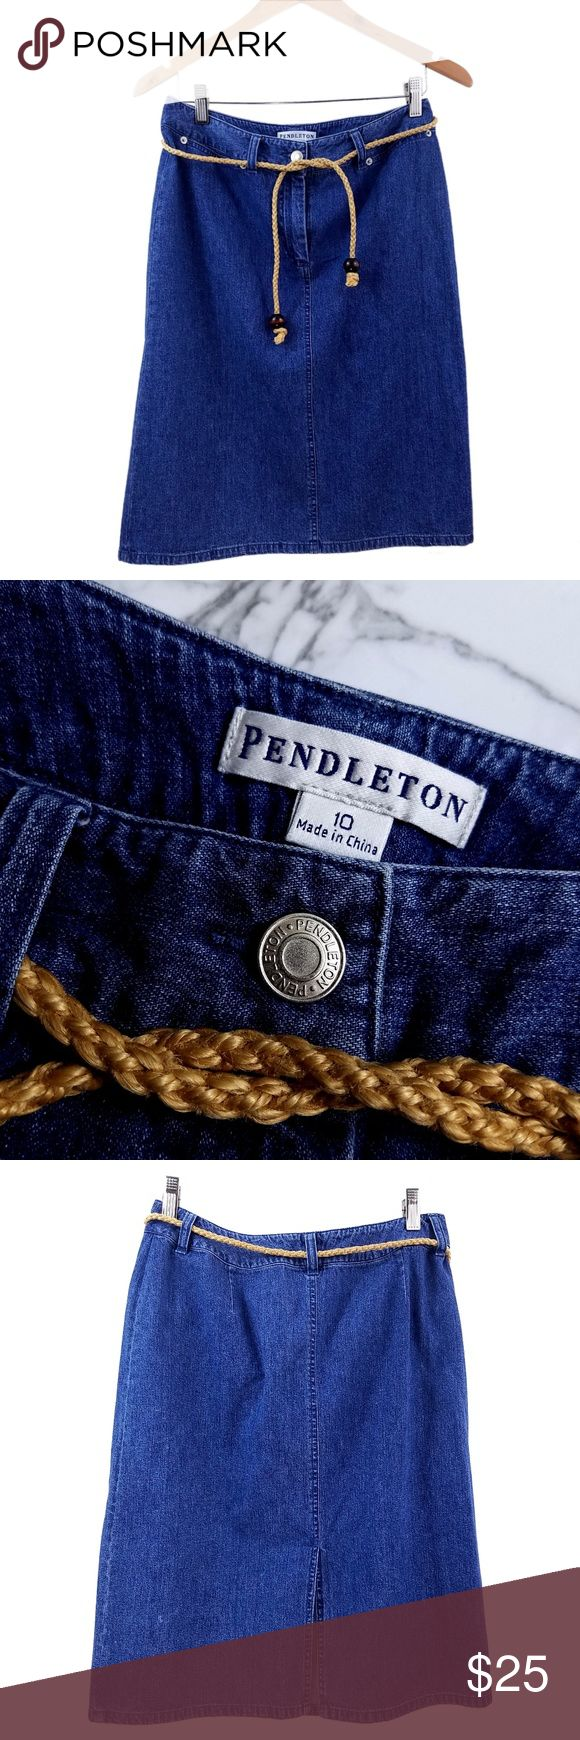 """Vintage Pendleton Denim Jean Skirt with Belt 10 Brand. Pendleton  Size. Women's 10   Waist (All the way around) 30"""" Hips (Fullest part all the way around) 38"""" Length 22 3/4""""  Materials 100% COTTON  //Comes with Rope Belt Shown Pendleton Skirts"""